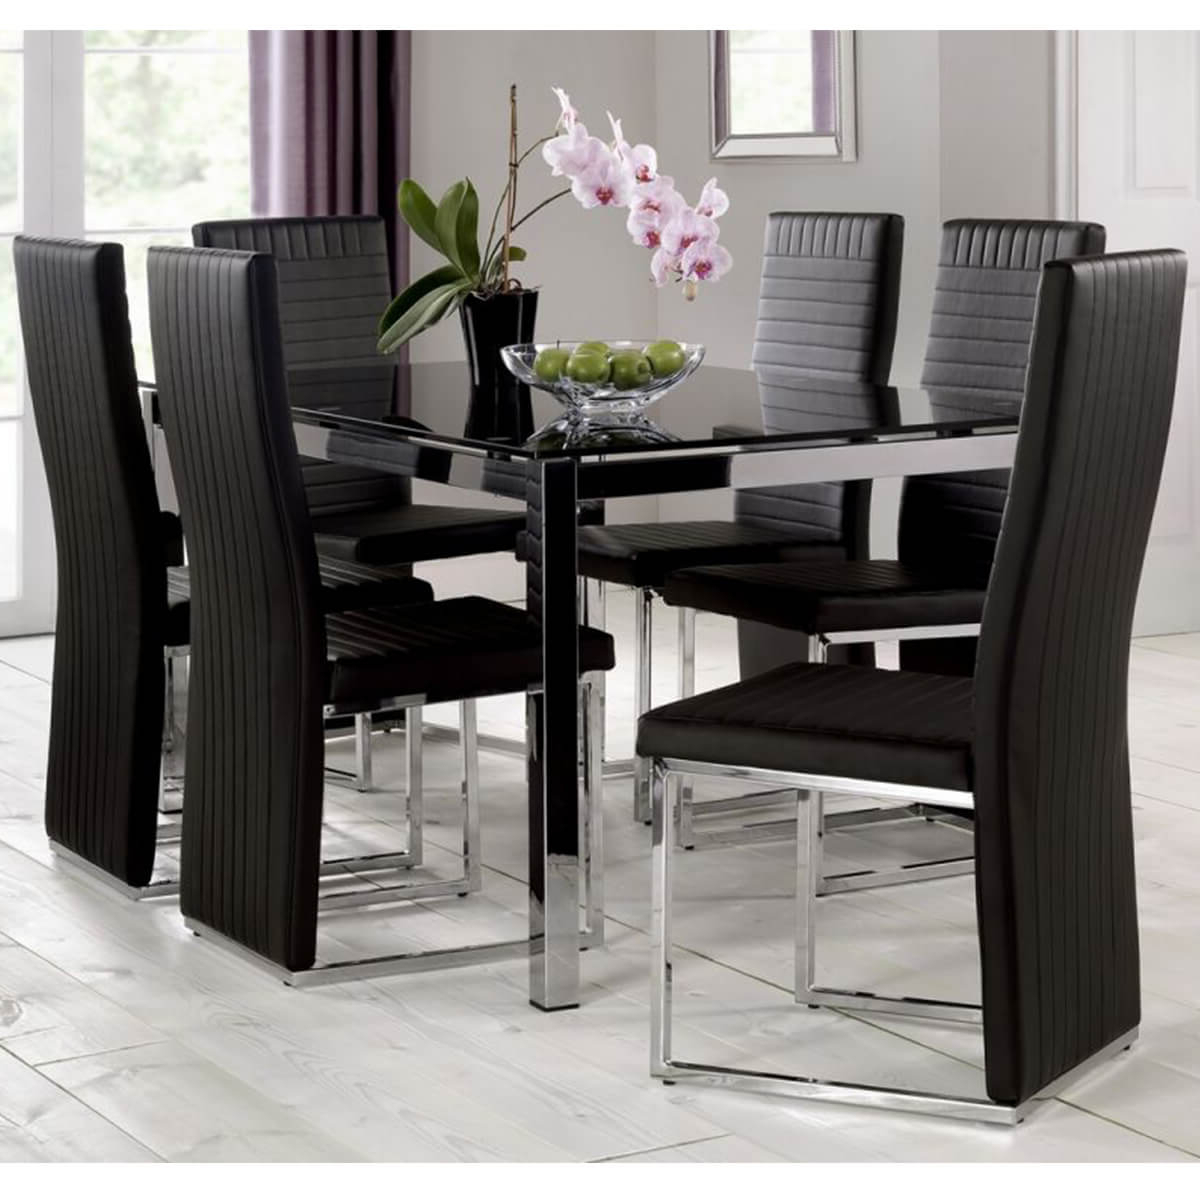 Most Popular 6 Seater Retangular Wood Contemporary Dining Tables Intended For Tempo Black Dining Table With Black Chairs (View 20 of 25)